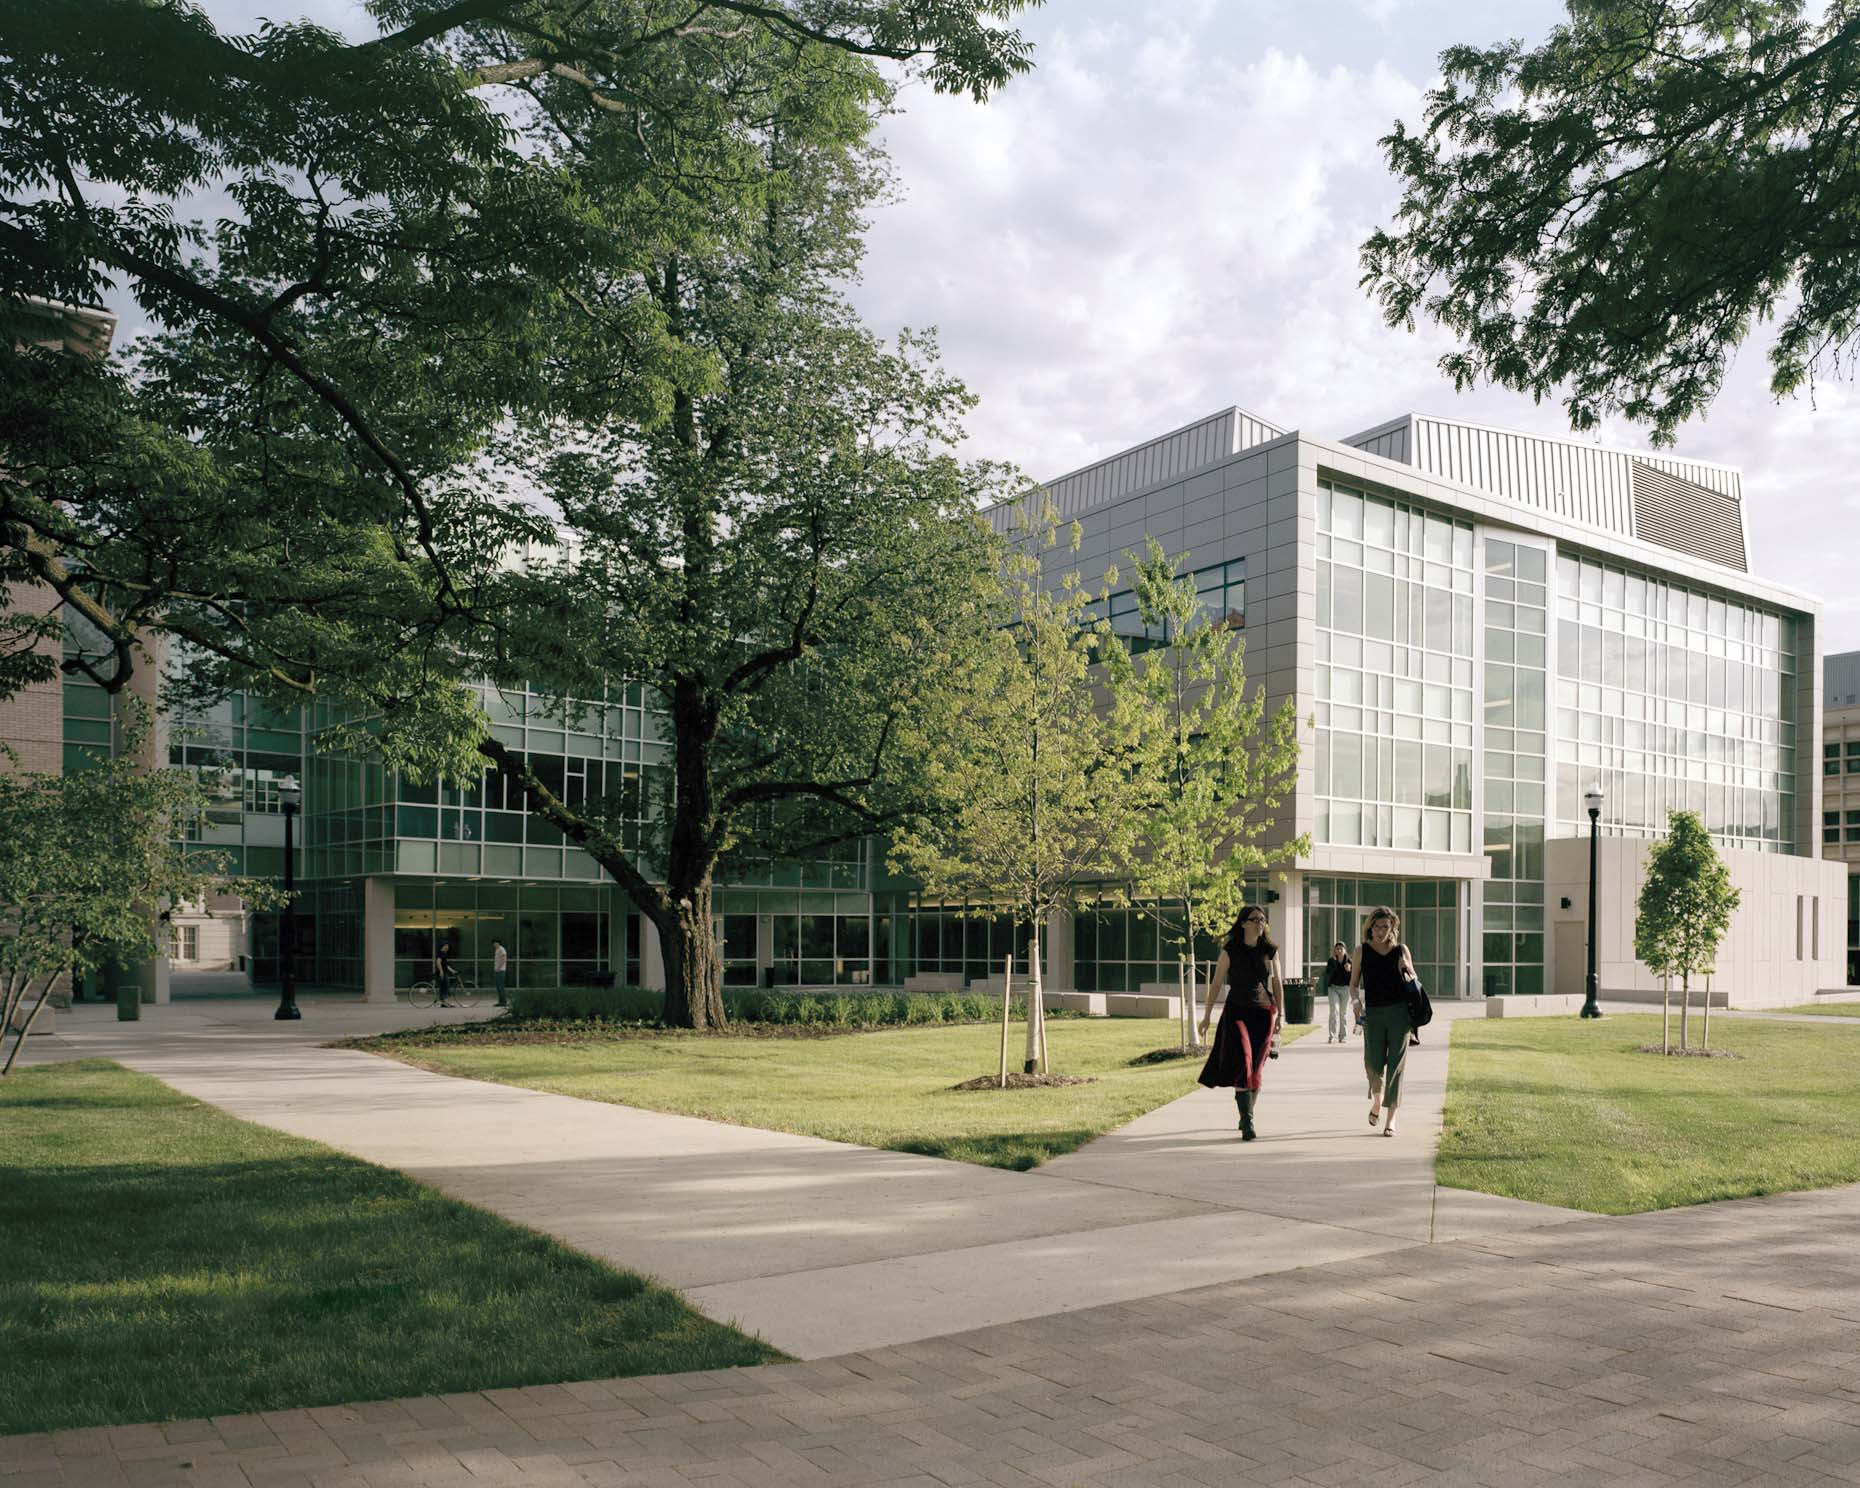 The Ohio State University Psychology Building by NBBJ